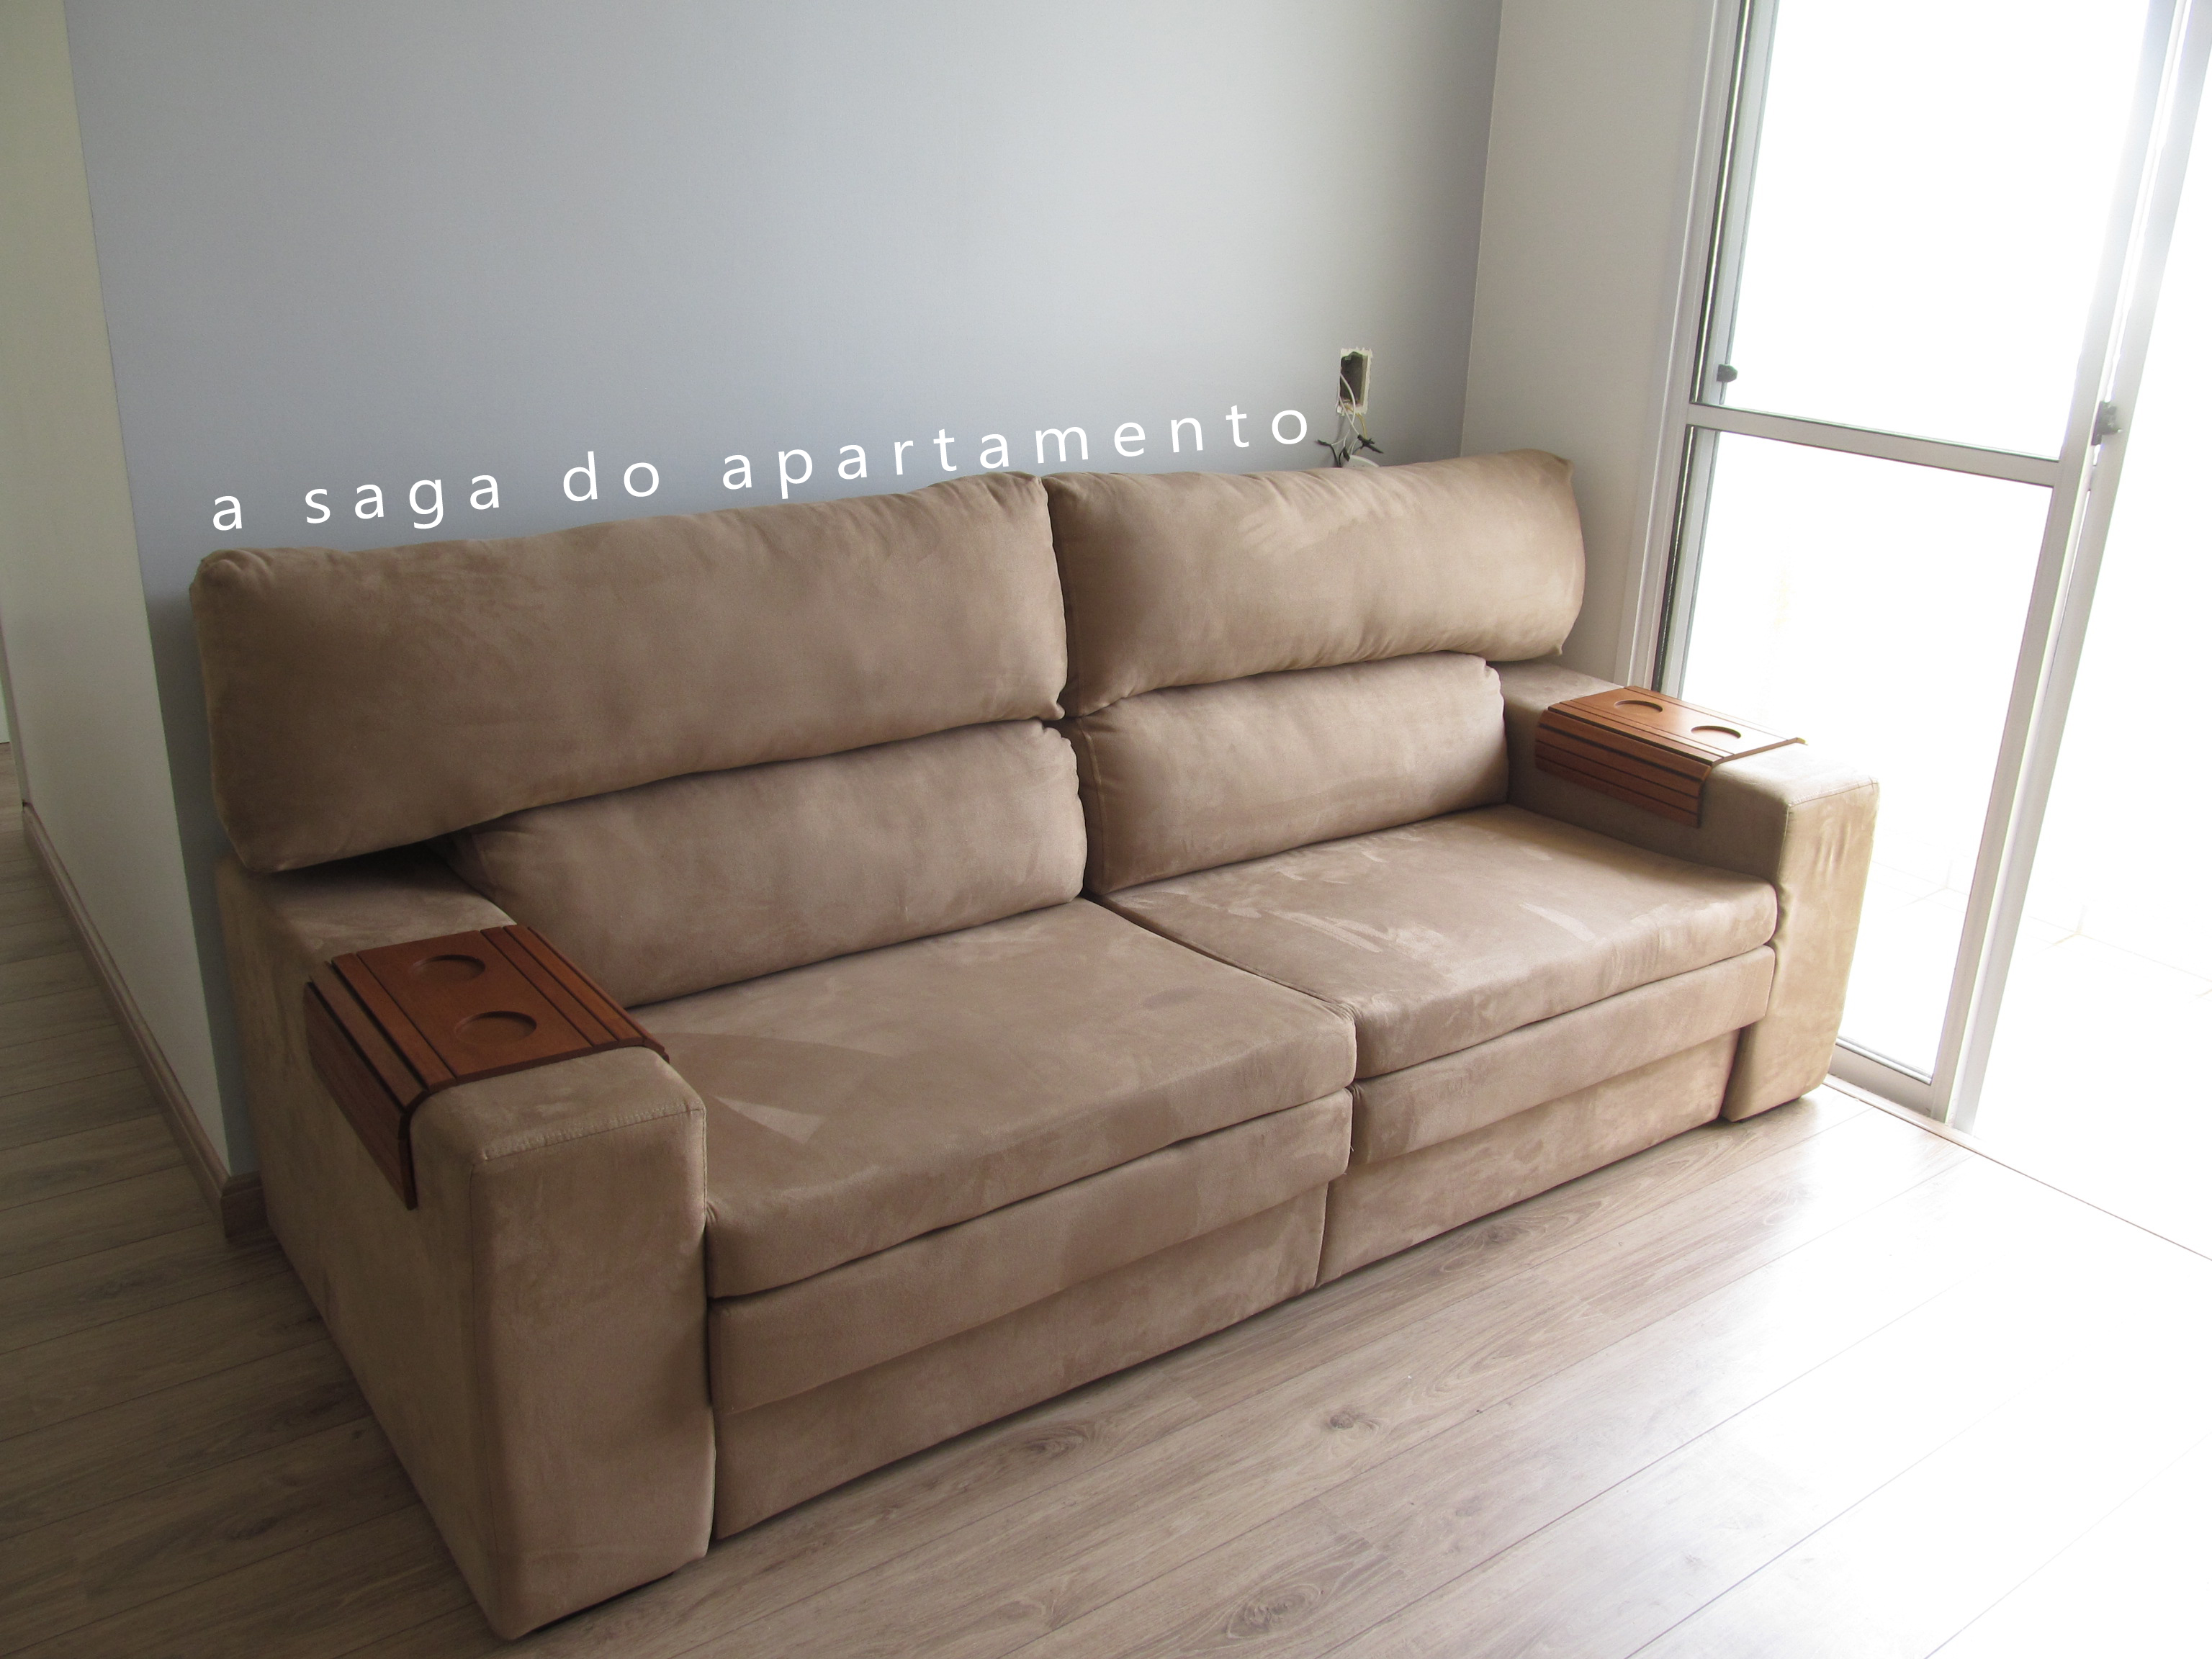 Sof retr til com chaise a saga do apartamento for Sofas de 2 plazas pequenos